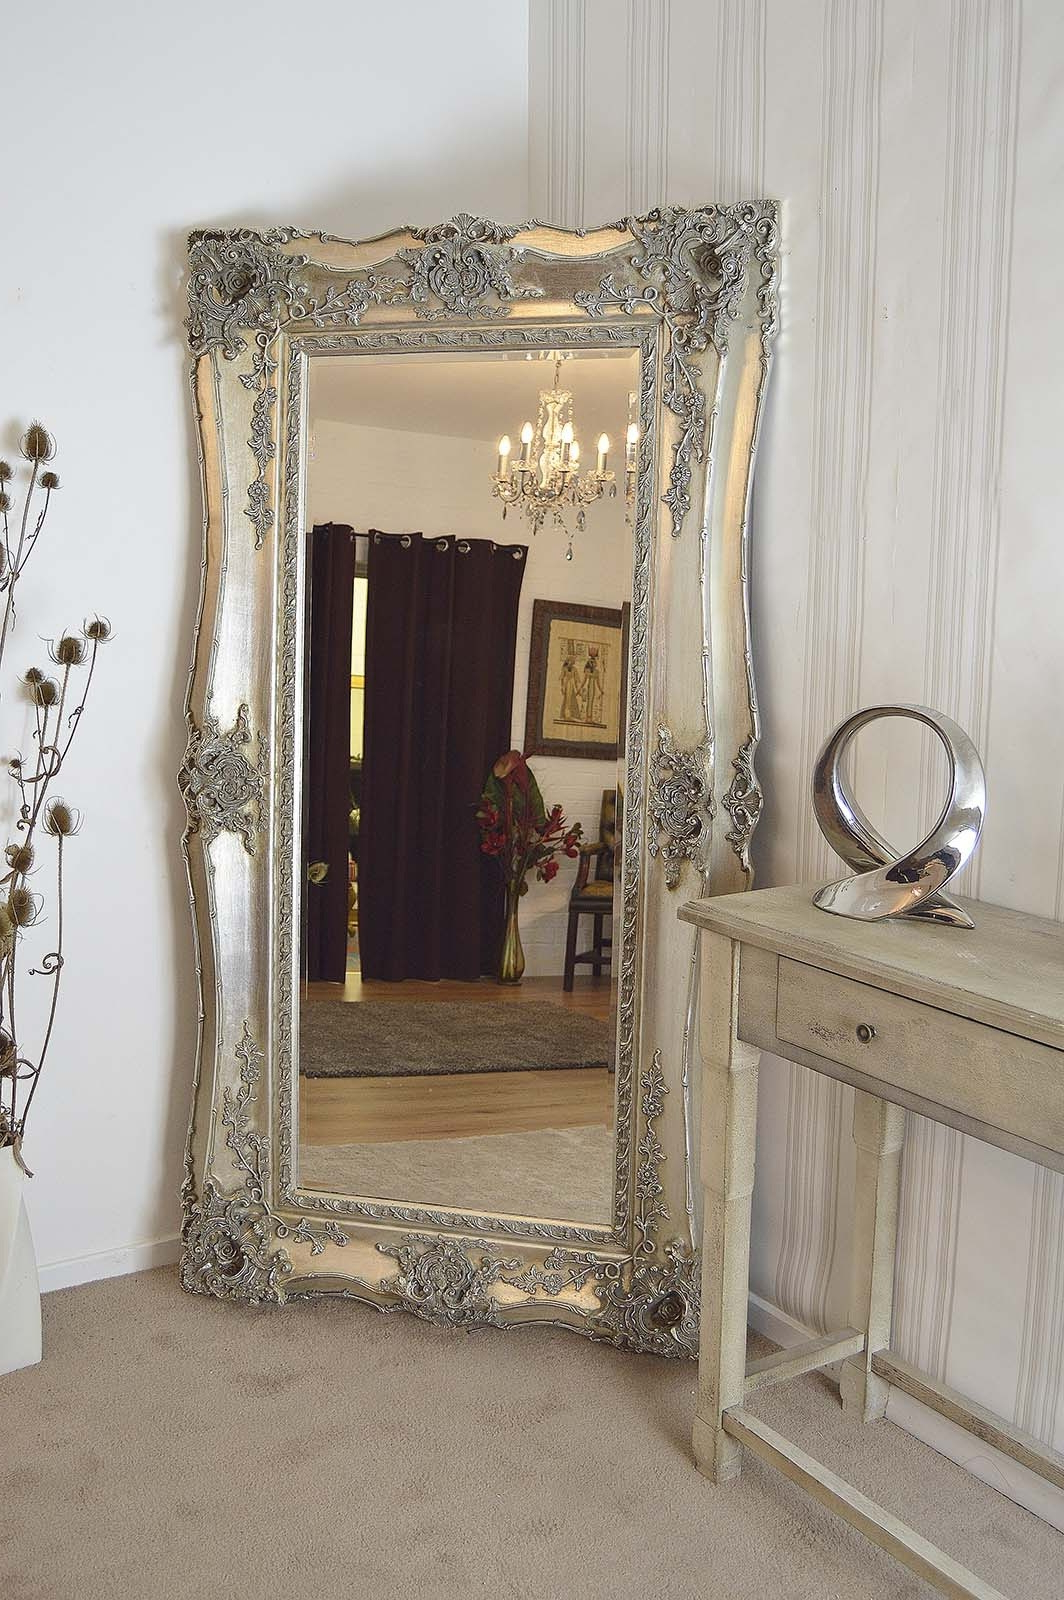 Popular Oversized Wall Mirrors Regarding Large Wall Mirrors For Sale In Cheery Decorative Framed (View 19 of 20)